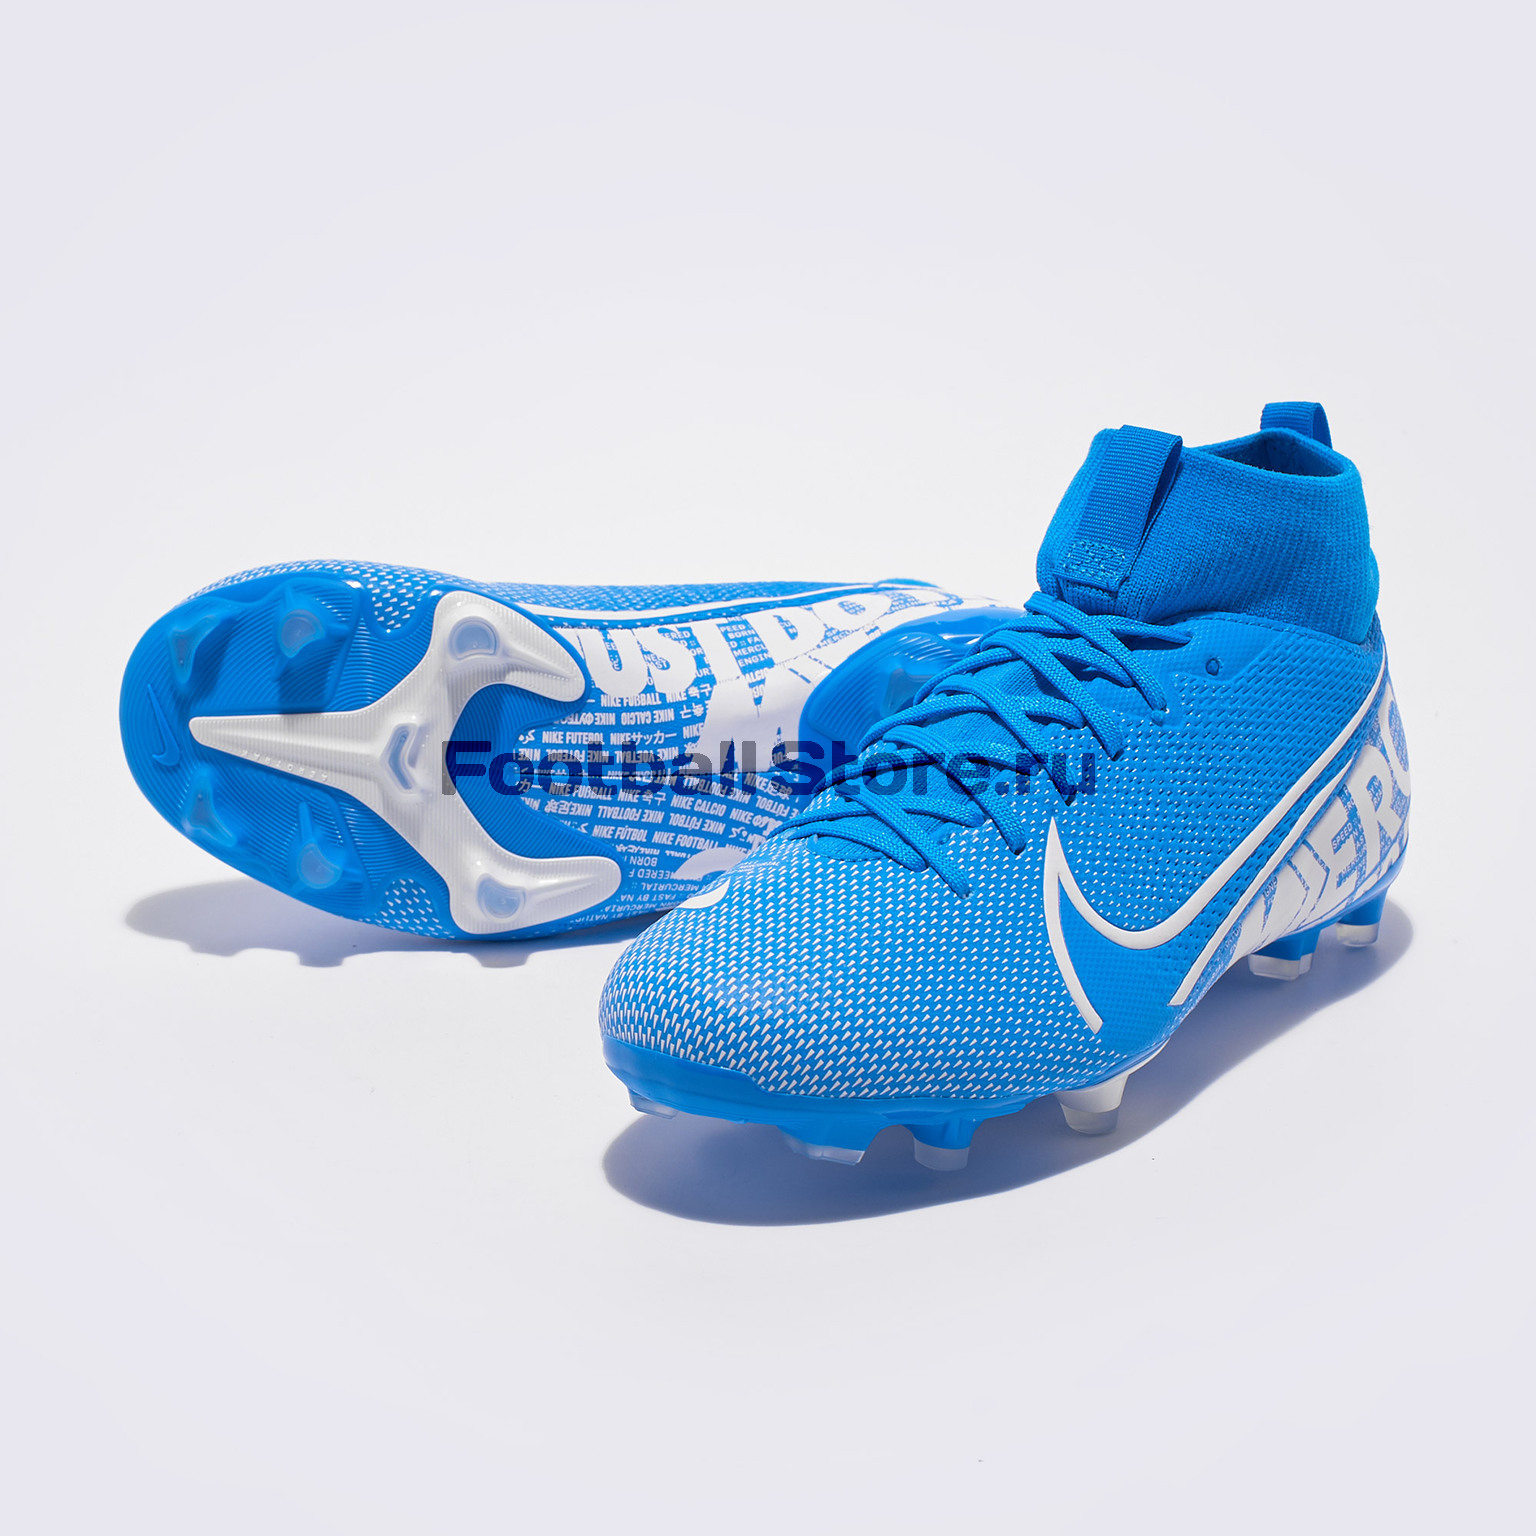 Бутсы детские Nike Superfly 7 Academy FG/MG AT8120-414 бутсы nike superfly 6 club fg mg ah7363 001